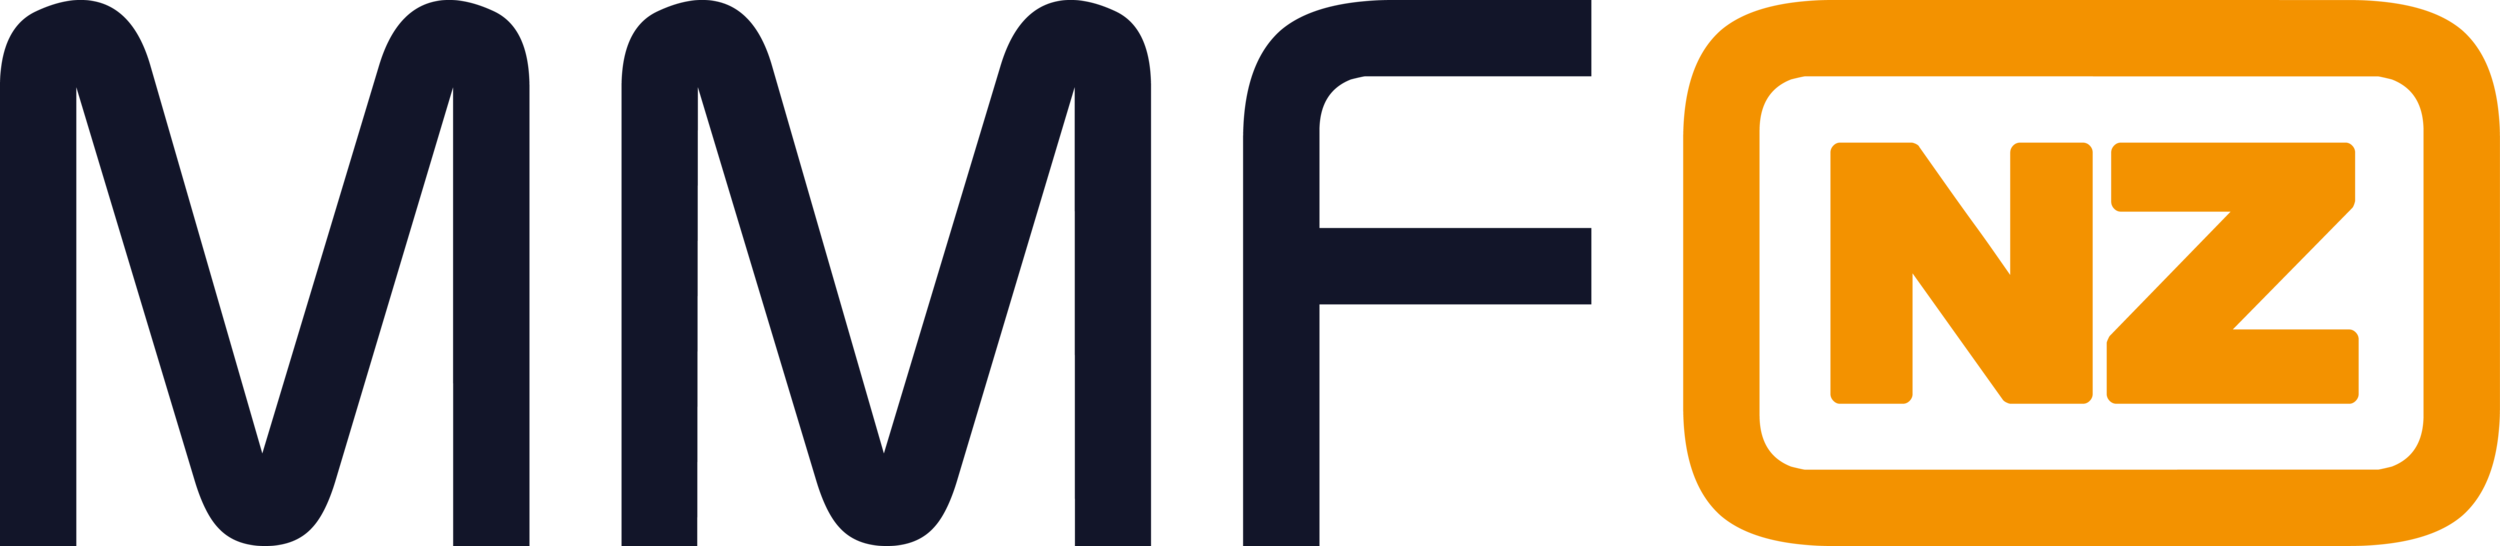 MMF 2017 LOGO (REVERSED).png